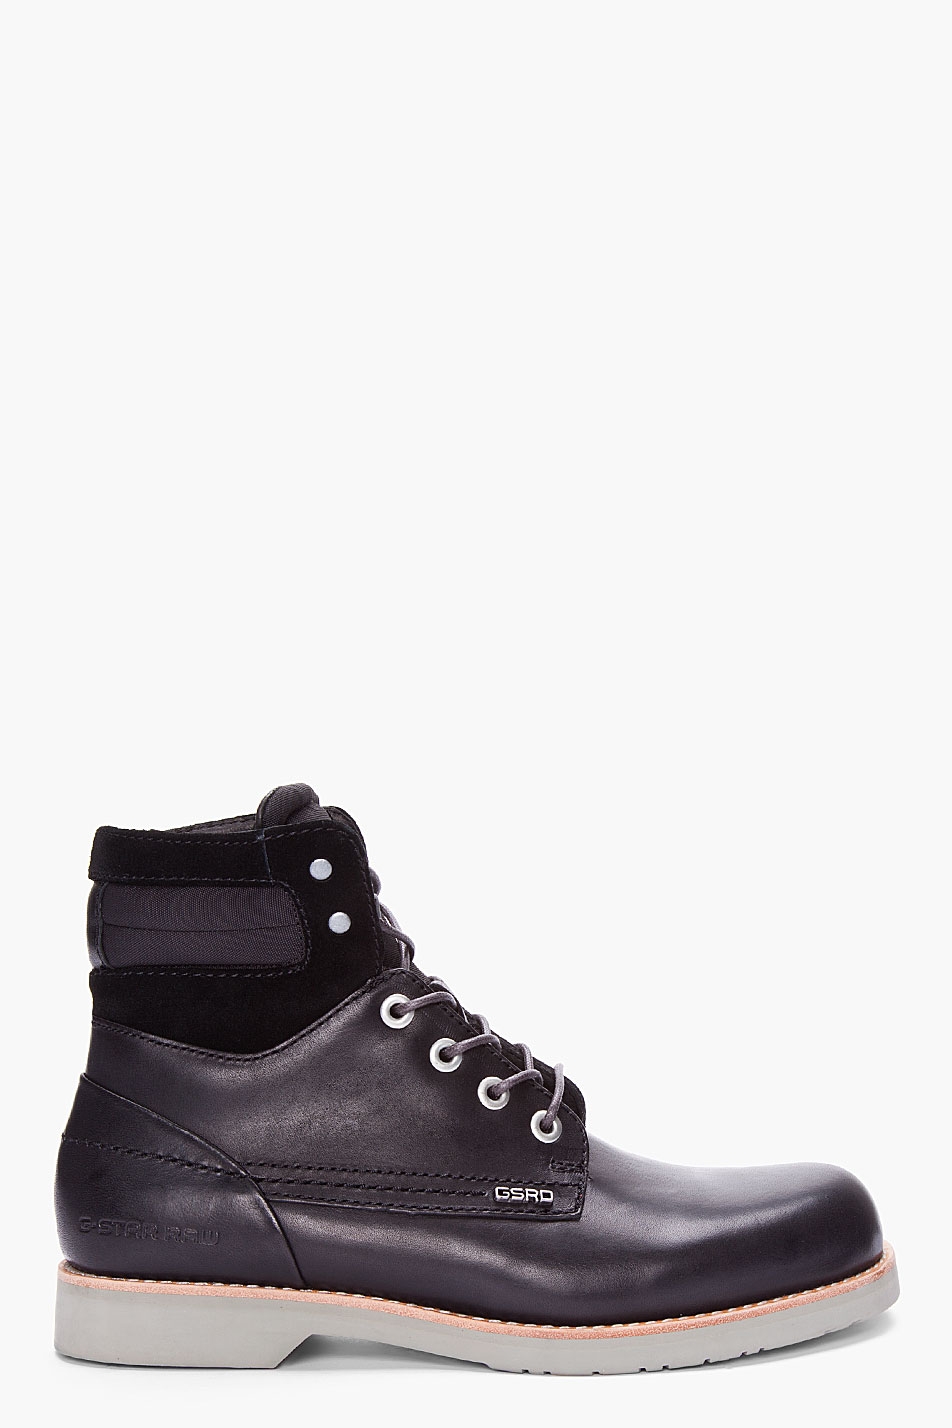 g star raw black district summit boots in black for men lyst. Black Bedroom Furniture Sets. Home Design Ideas